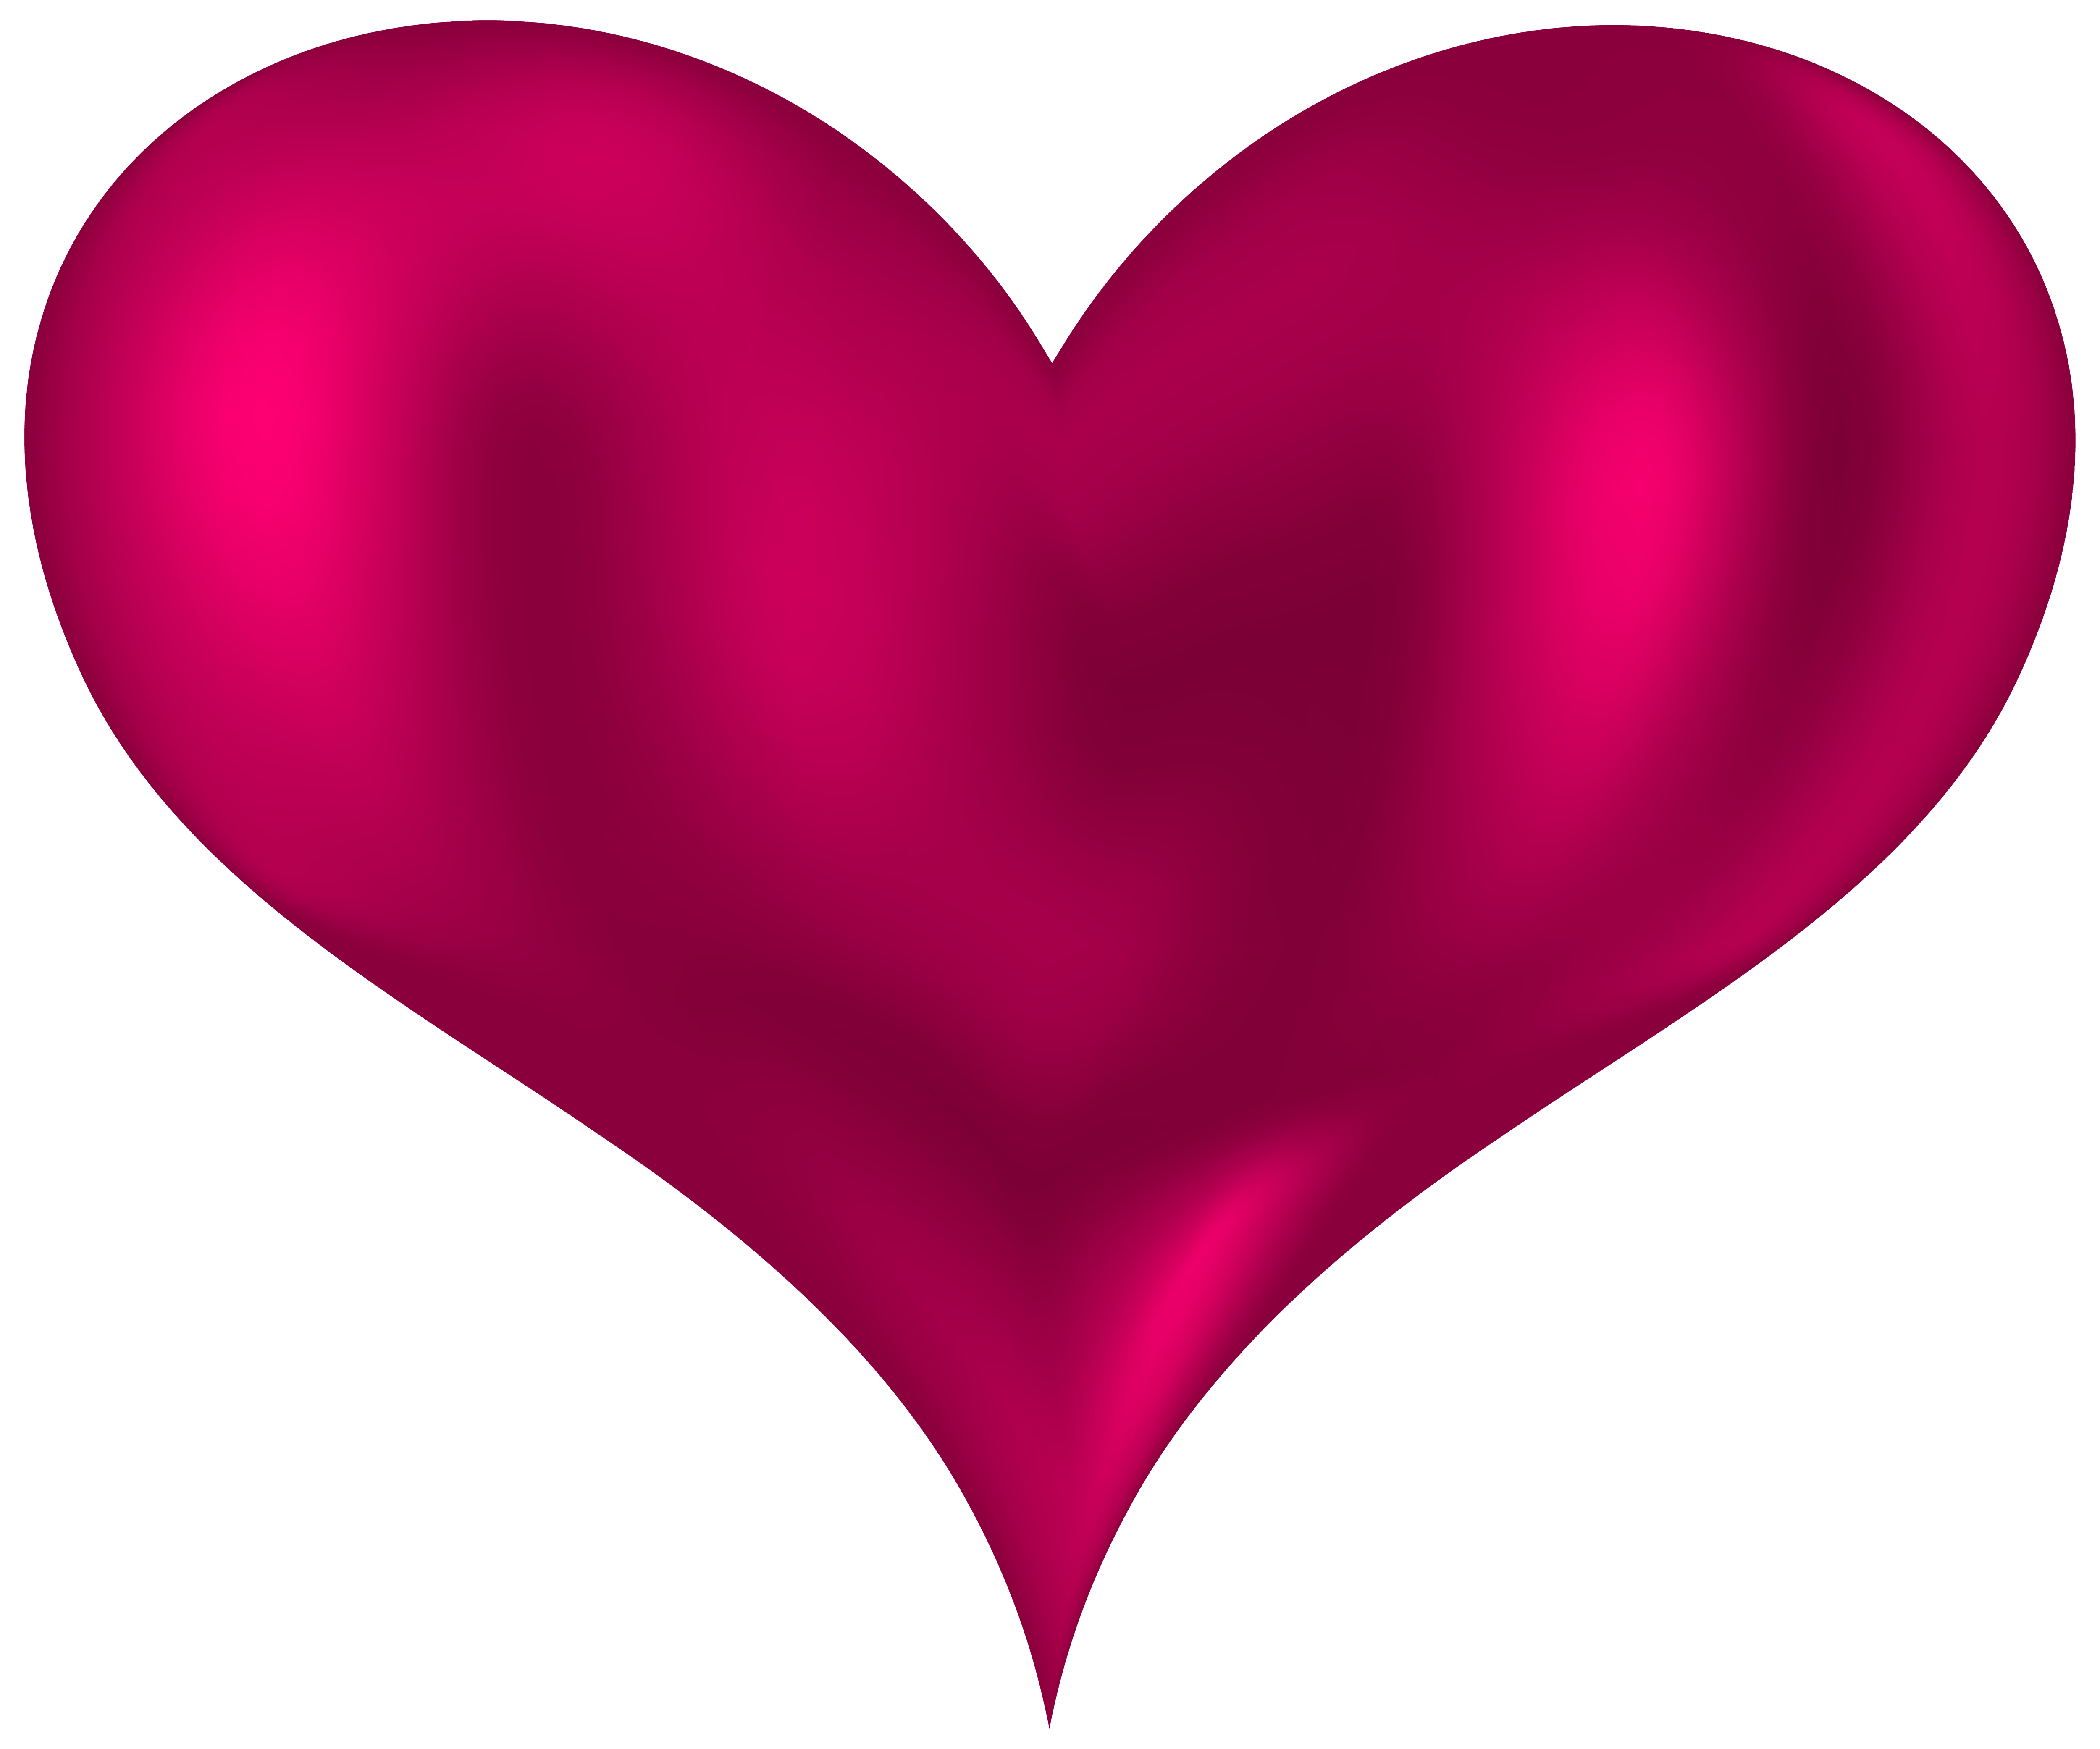 Sunglasses clipart pink heart. Beautiful png best web